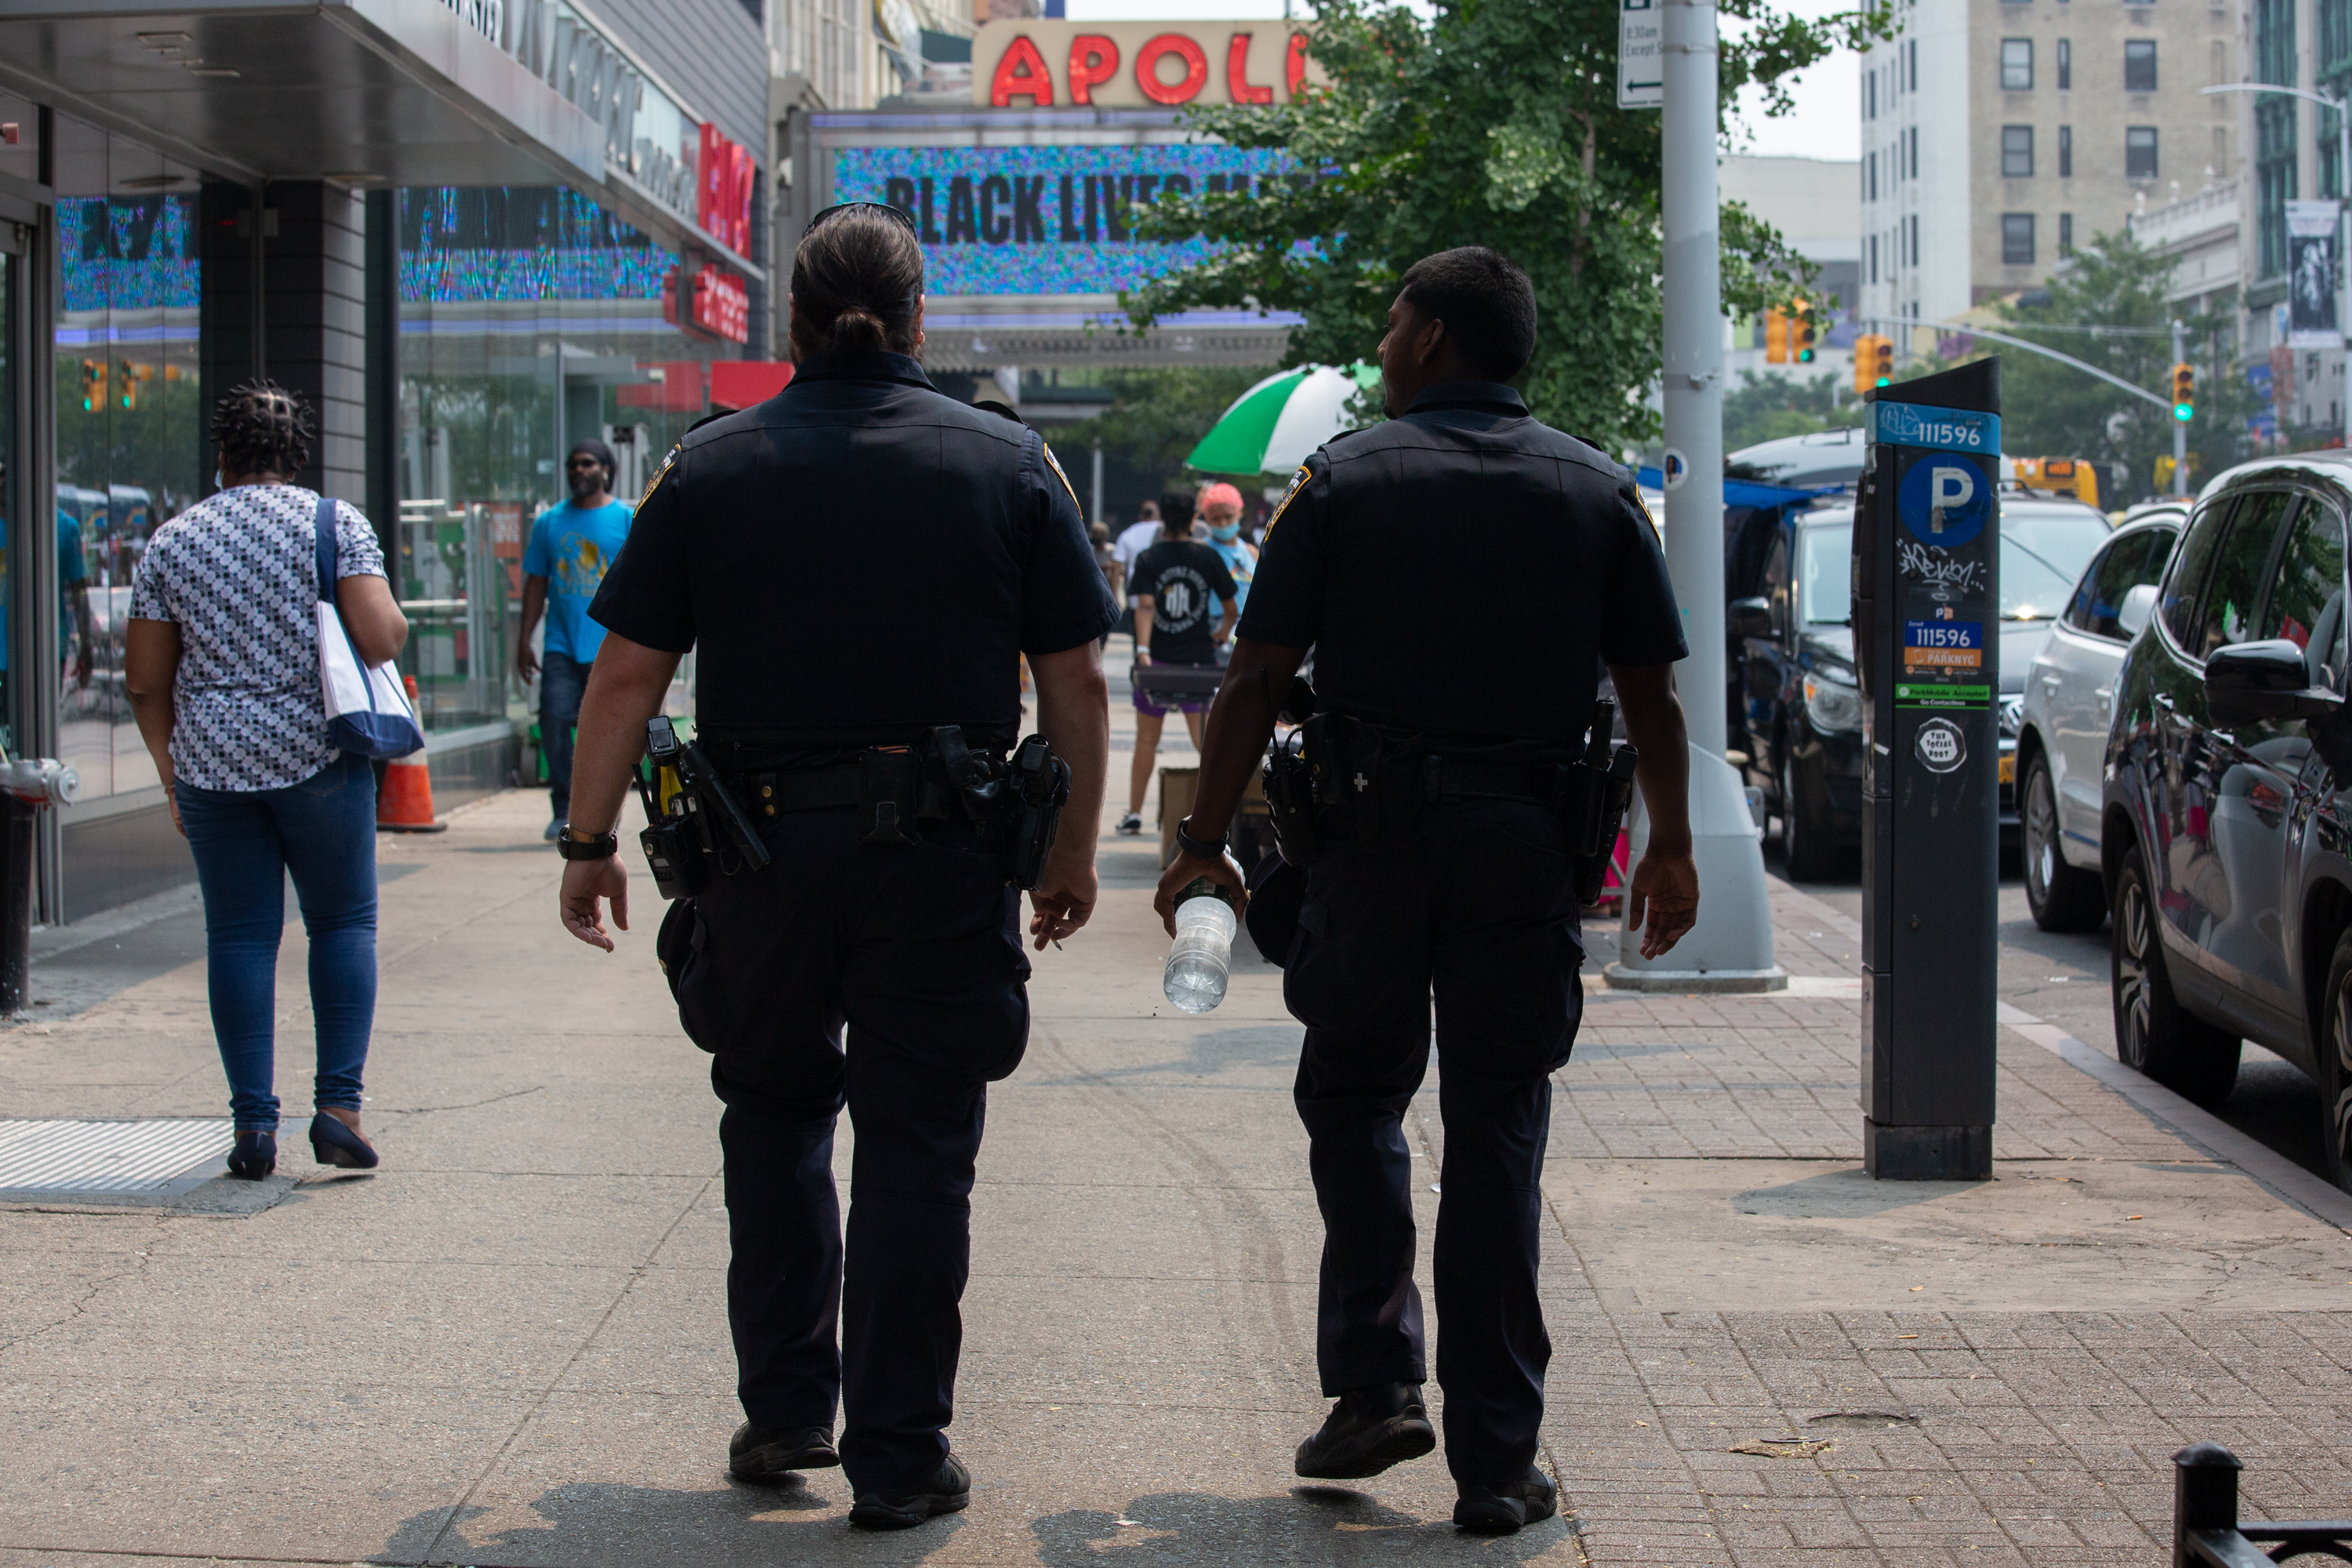 NYPD officers patrol 125th Street in Harlem, July 20, 2021.